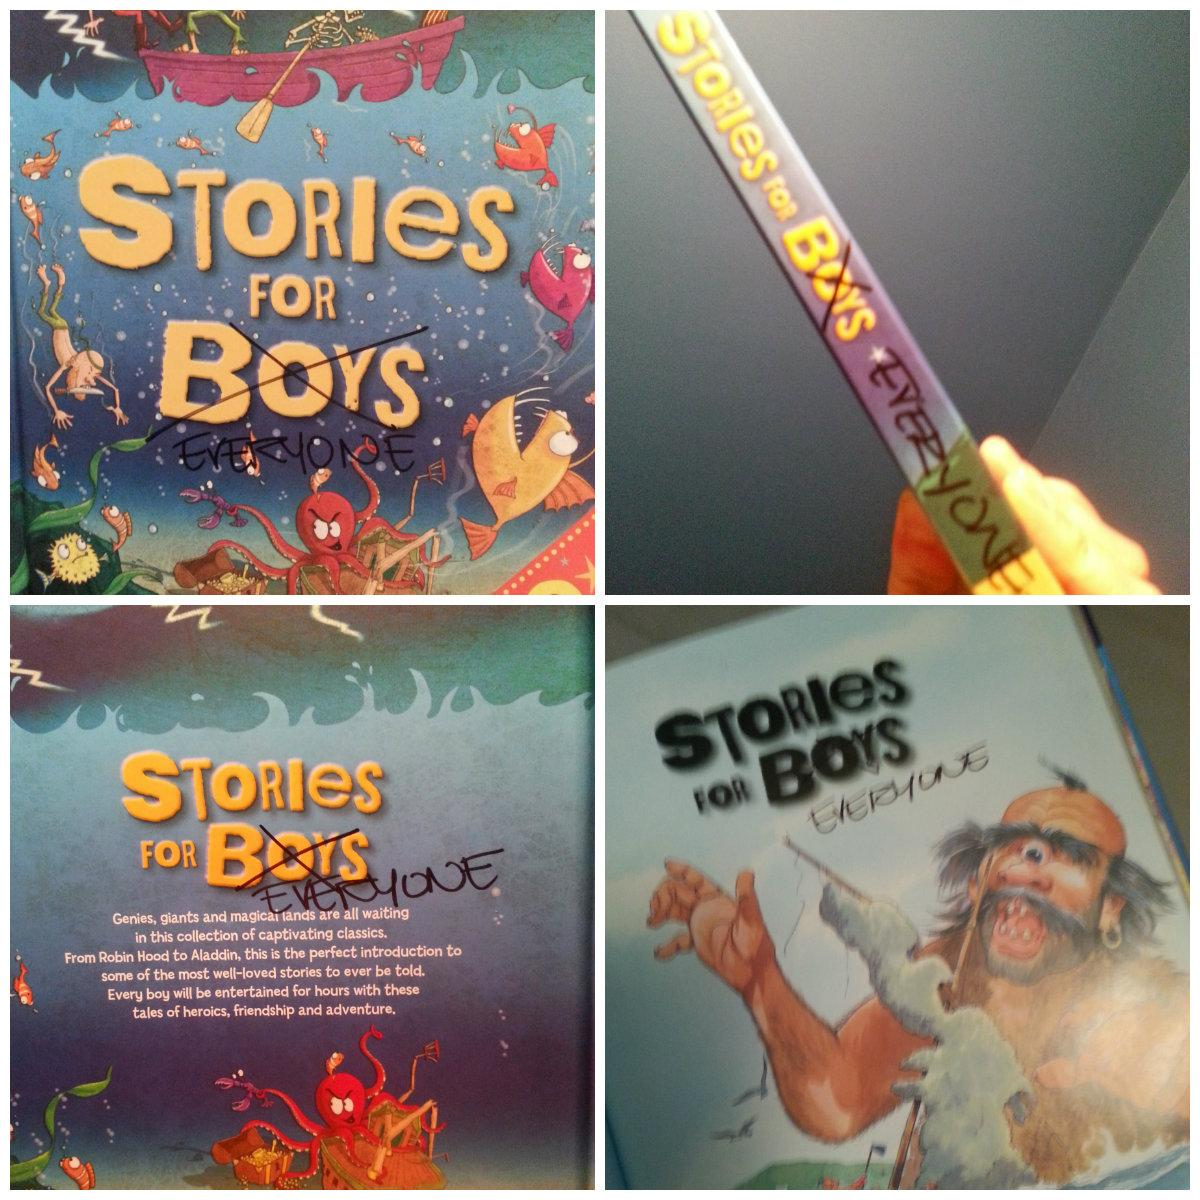 .@Igloo_Books my 9 month old son got one of your books for Easter.#likeaboy #likeagirl #likeaperson #lettoysbetoys http://t.co/rgAWH7ZfLI